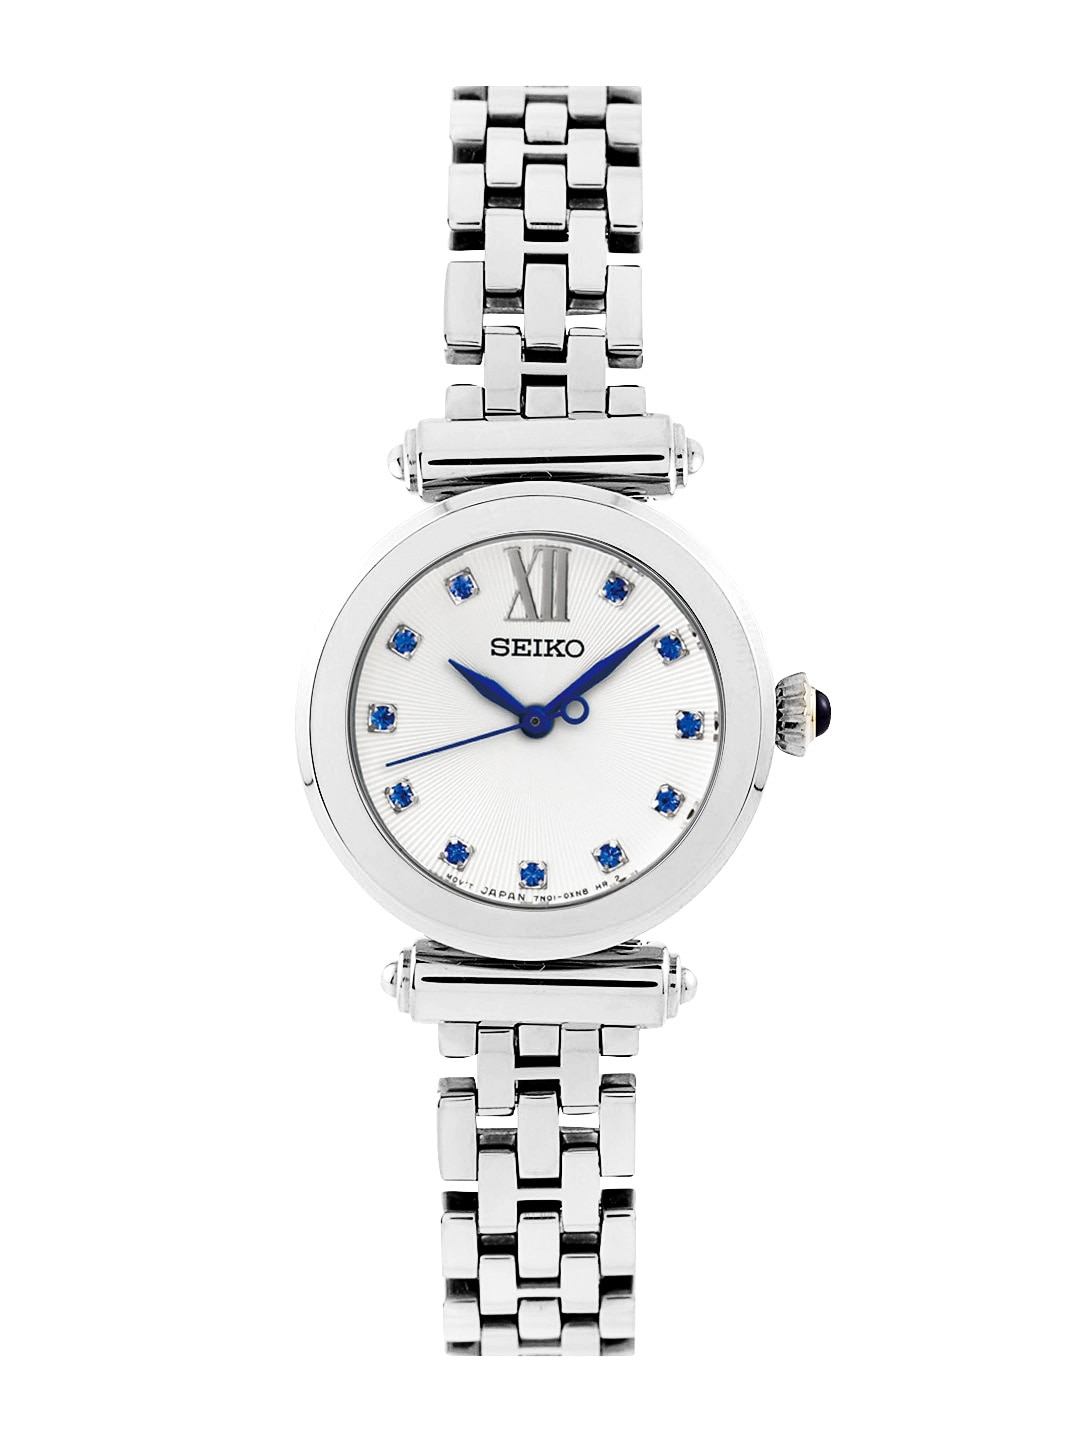 SEIKO Women Off-White Dial Watch SRZ399P1